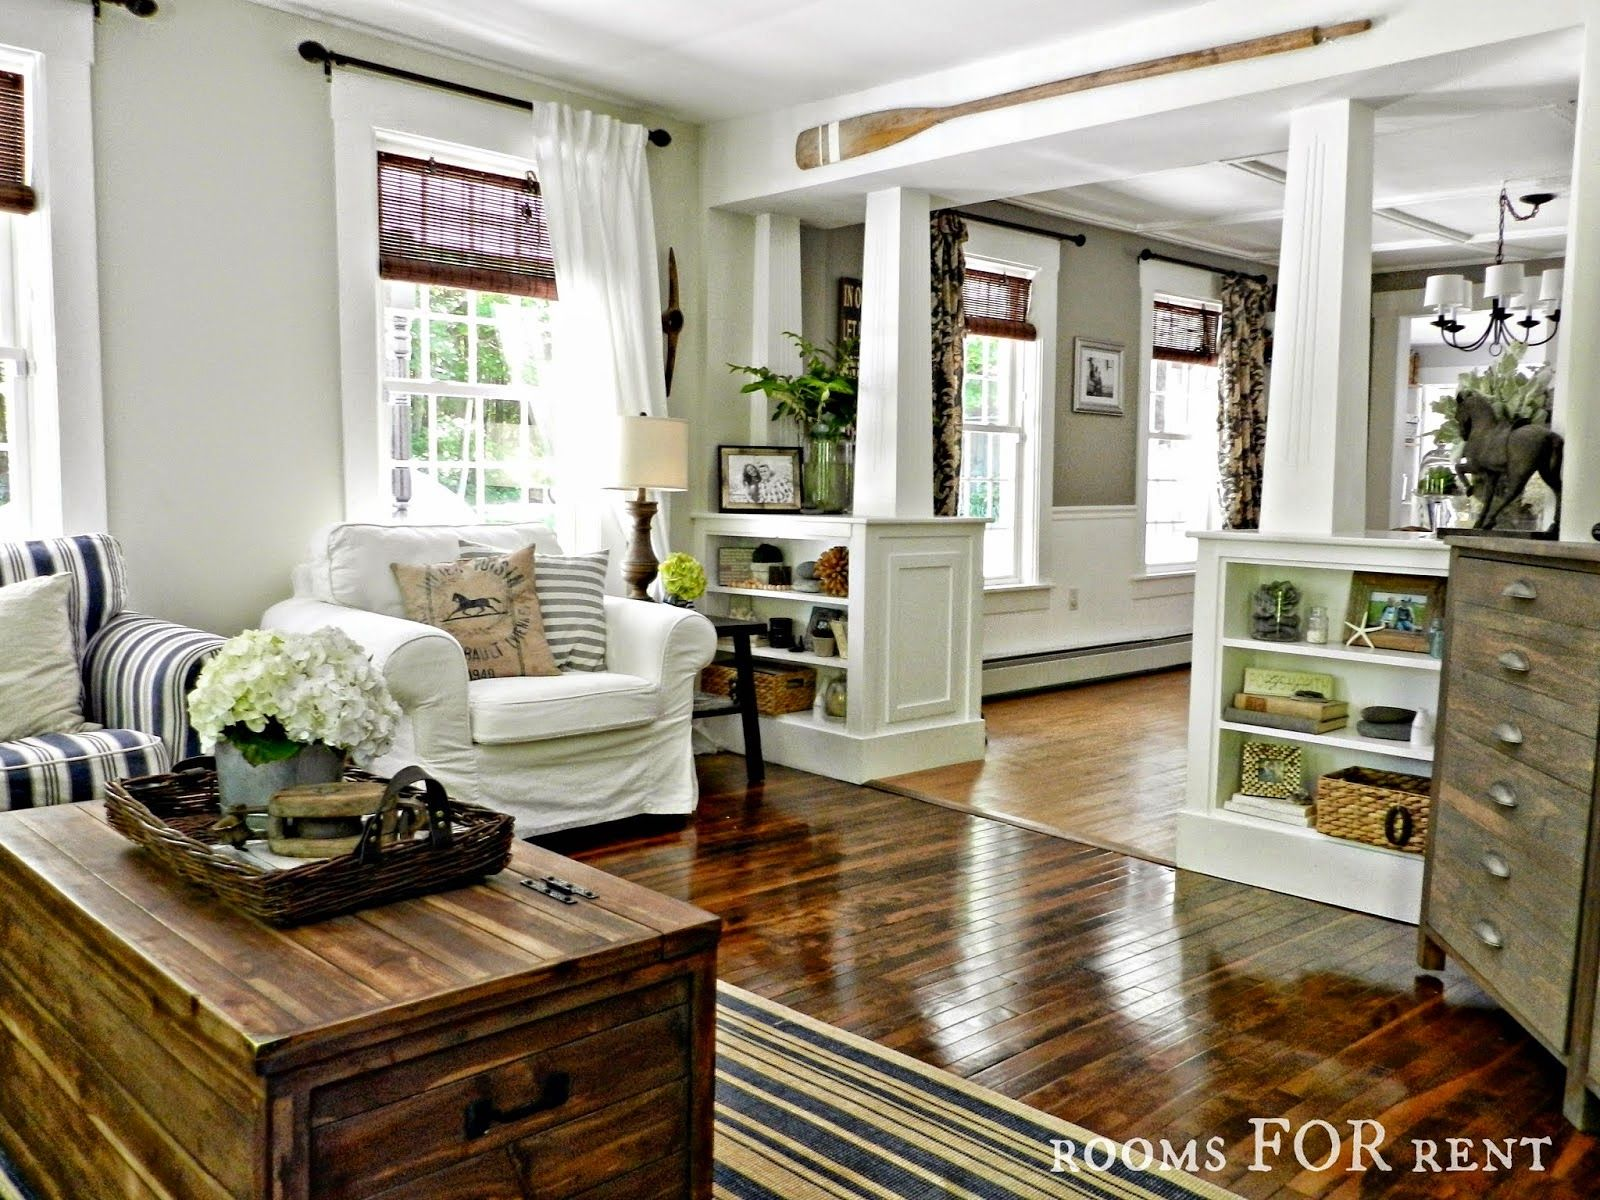 style house-rooms for rent - city farmhouse love the bookcases